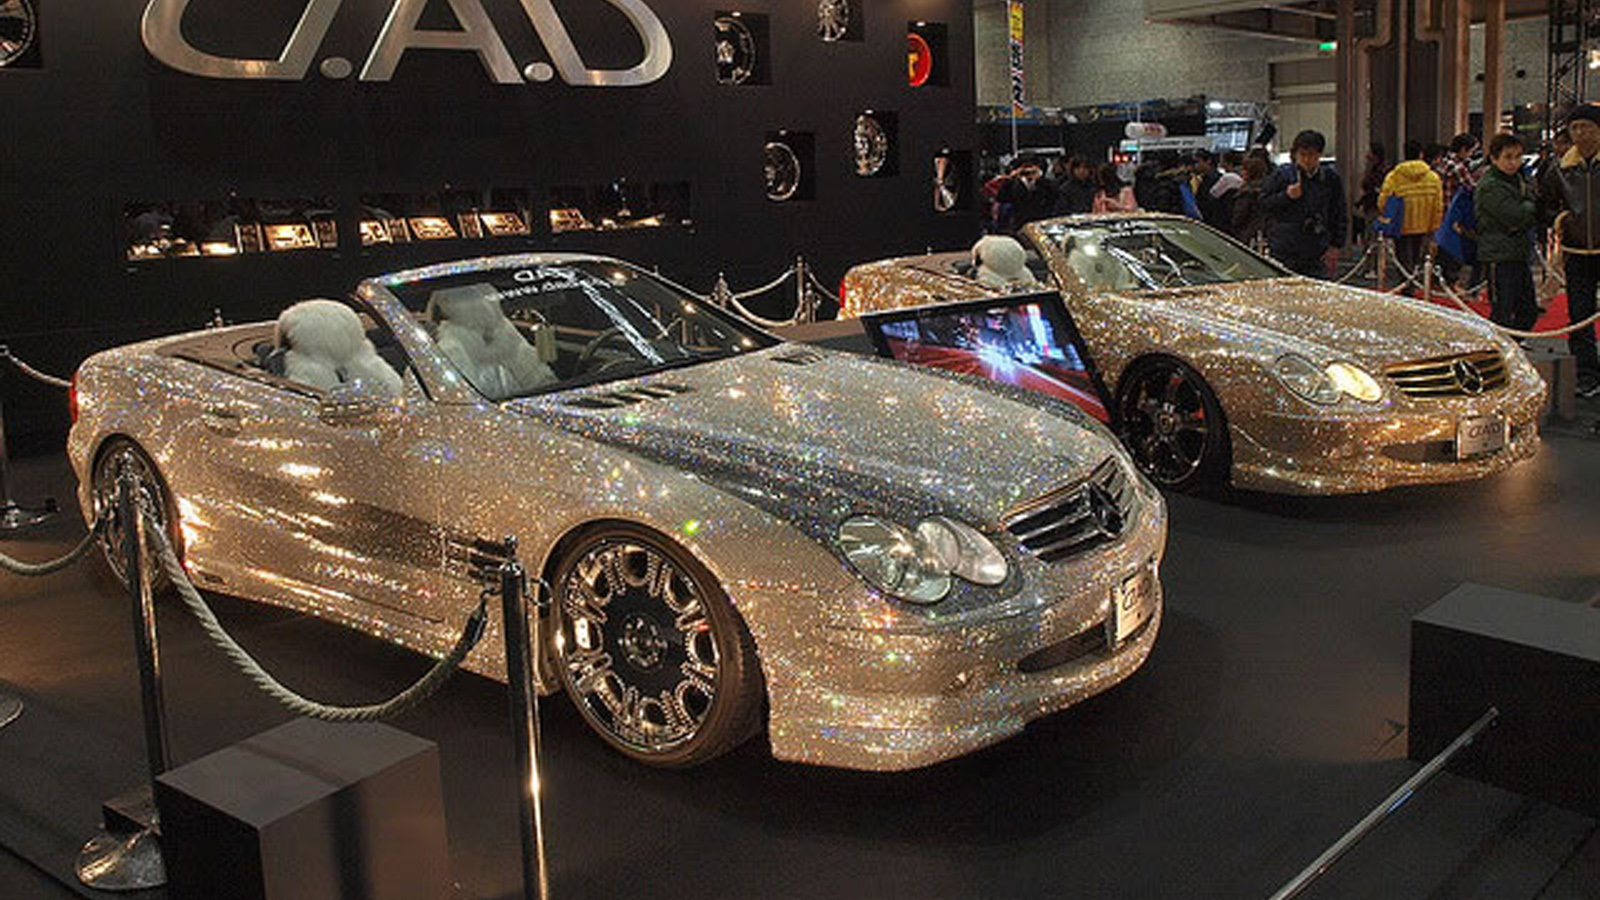 The Bling Covered Mercedes-Benz